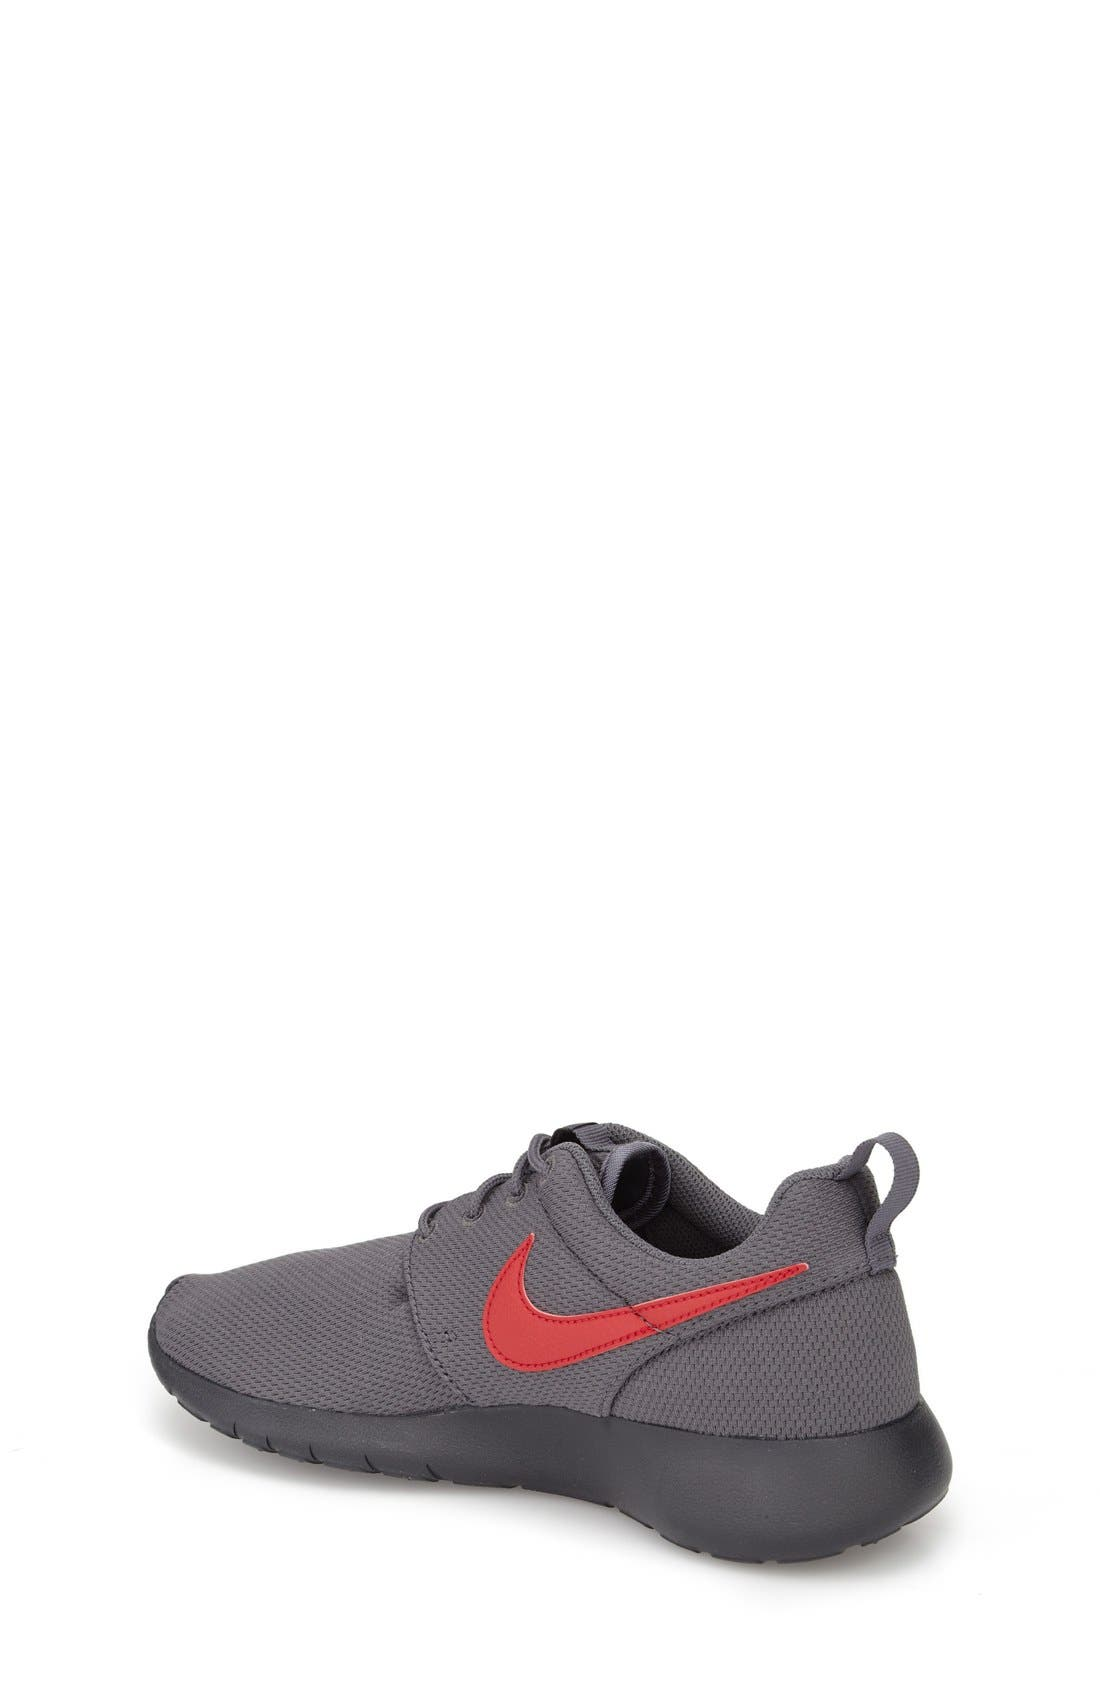 'Roshe Run' Sneaker,                             Alternate thumbnail 78, color,